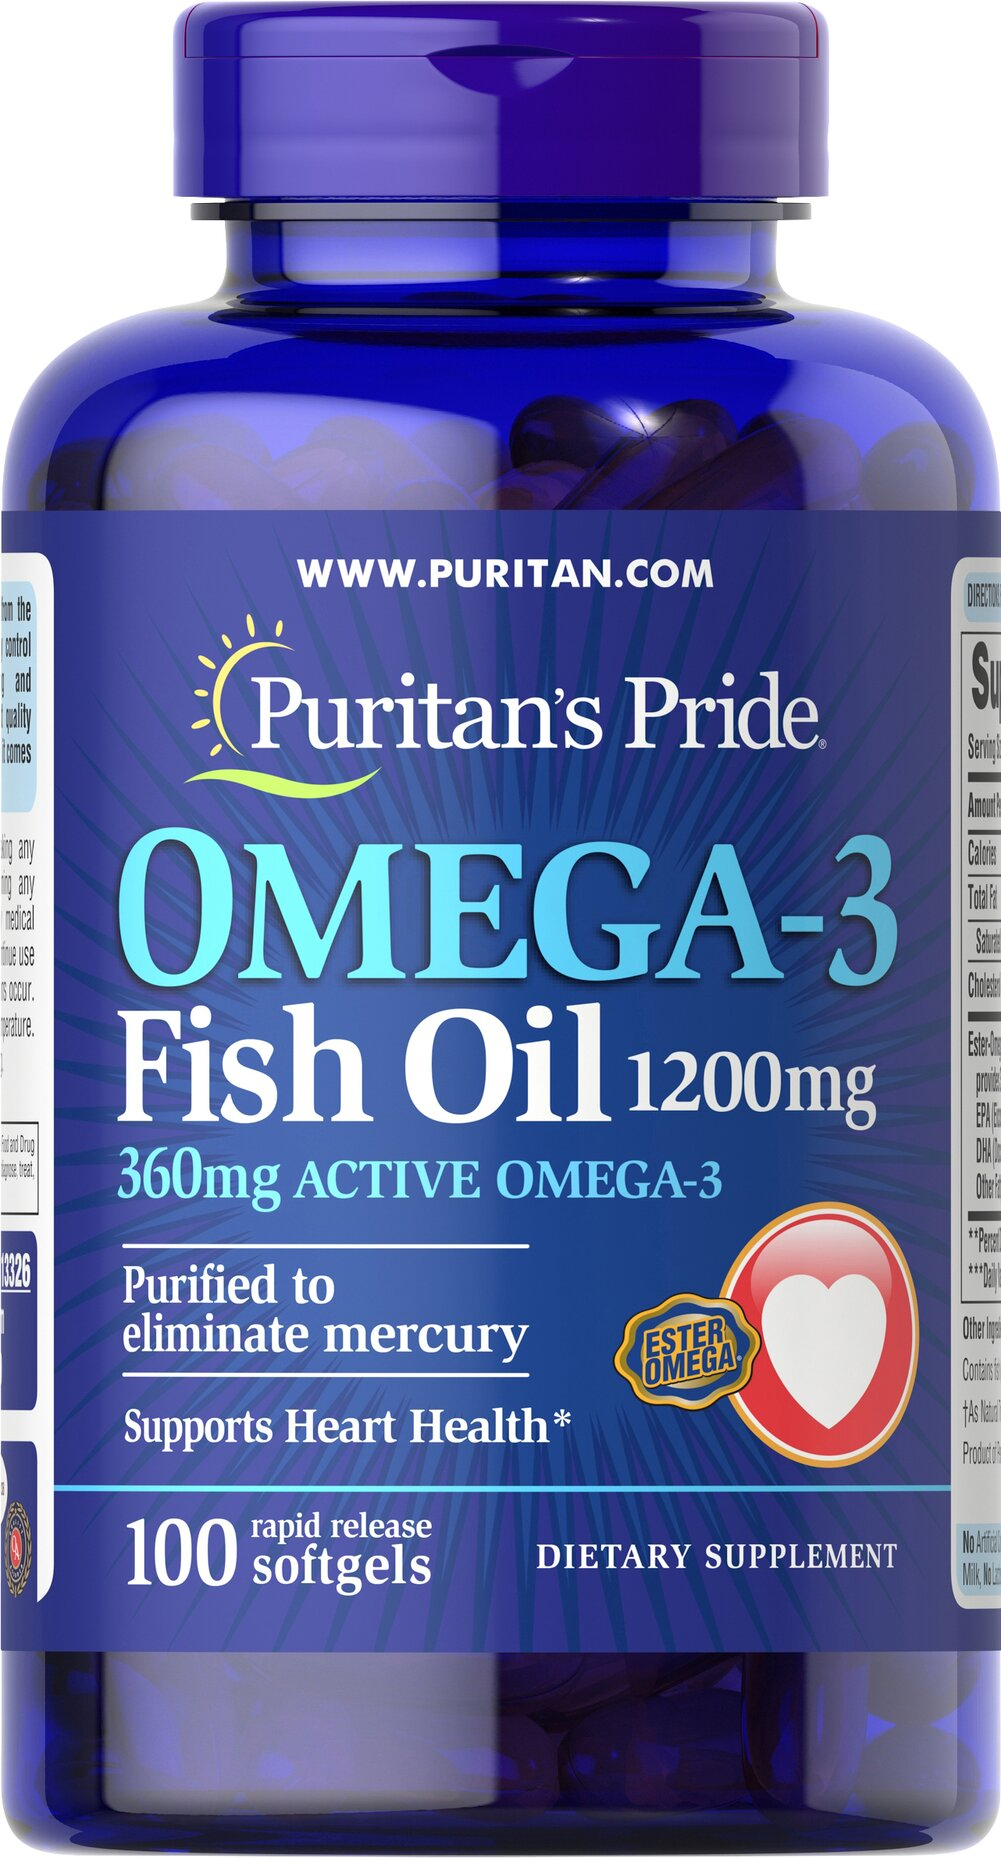 Omega-3 Fish Oil 1200 mg (360 mg Active Omega-3) <p><span></span></p>This Ester-Omega® Fish Oil provides 360mg of total omega-3 fatty acids, comprising of EPA, DHA and other fatty acids. EPA and DHA fatty acids support heart health.** Purified to eliminate mercury. Rapid release softgels. 100 Softgels 1200 mg $9.59